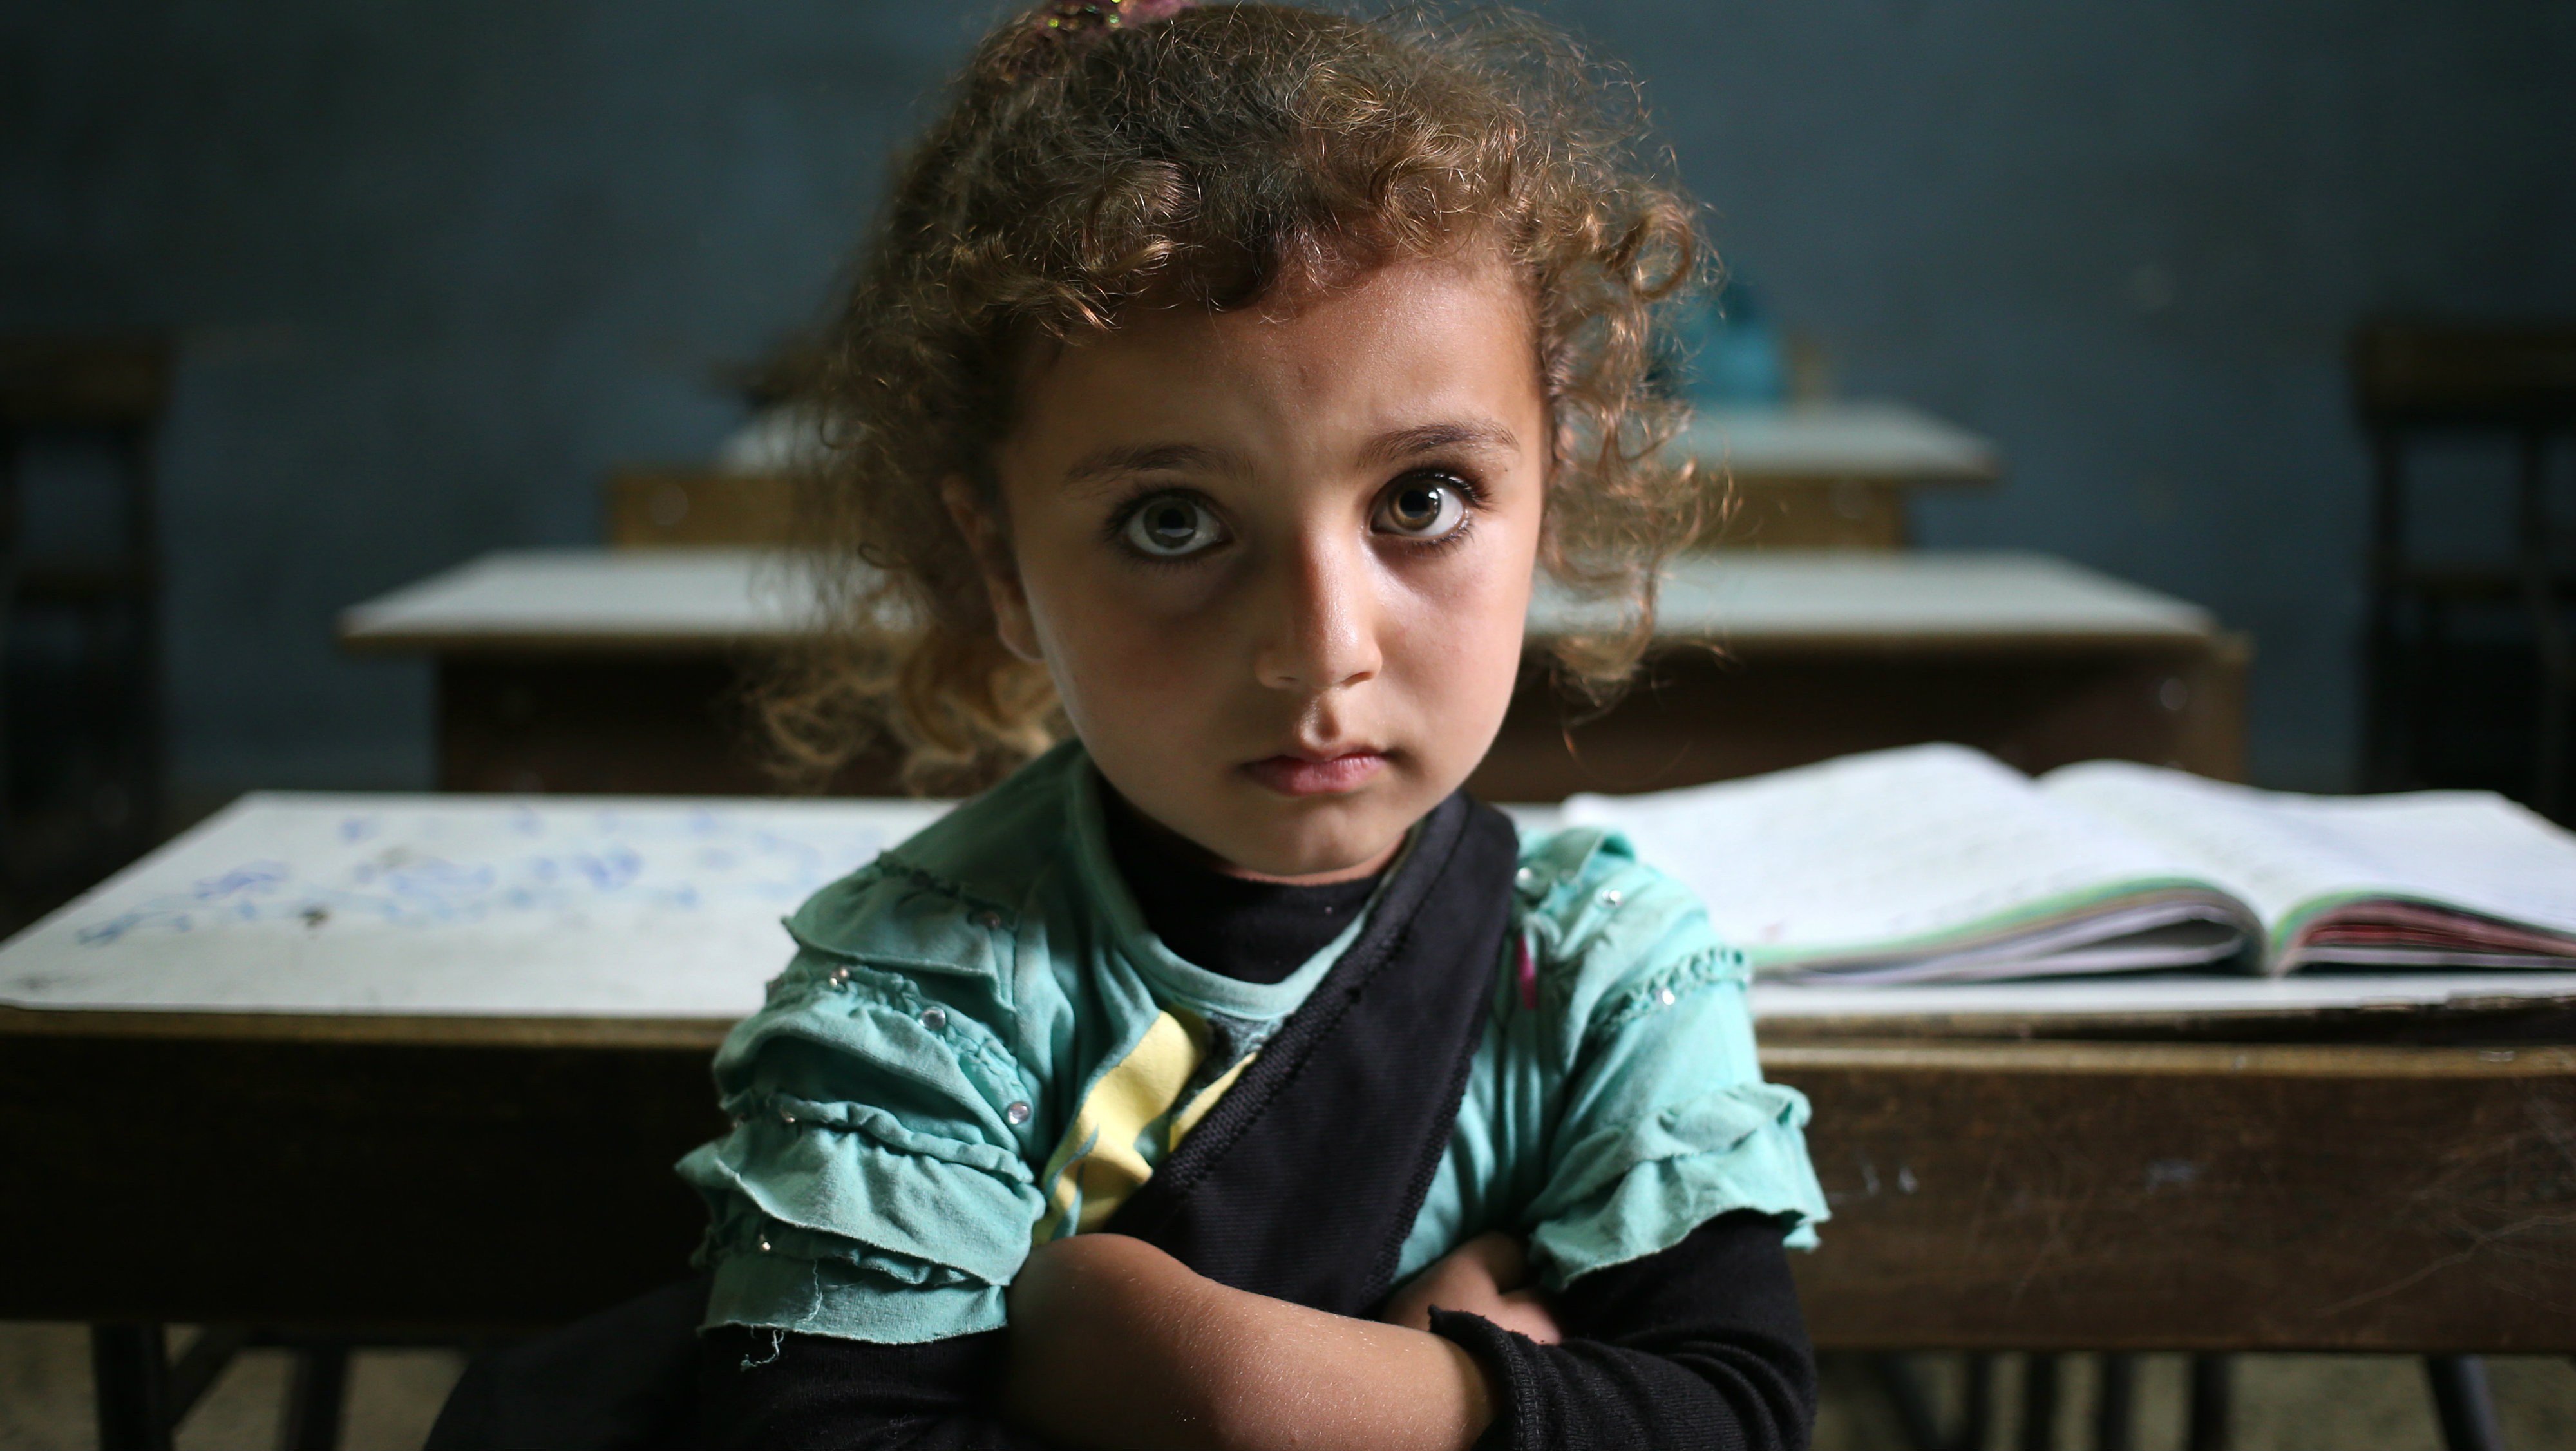 In this Thursday, May 29, 2014 file photo, a Syrian refugee girl sits in a classroom at a Lebanese public school where only Syrian students attend classes in the afternoon, at Kaitaa village in north Lebanon. Forty percent of children from five conflict-scarred Middle Eastern countries are not in school, the U.N. child welfare agency said in a report Thursday, Sept. 3, 2015, warning of a lost generation and a dim future for the region. UNICEF said 13.7 million out of 34 million school age children in Syria, Iraq, Yemen, Libya and Sudan are not getting an education, almost double the number five years ago. (AP Photo/Hussein Malla, File)